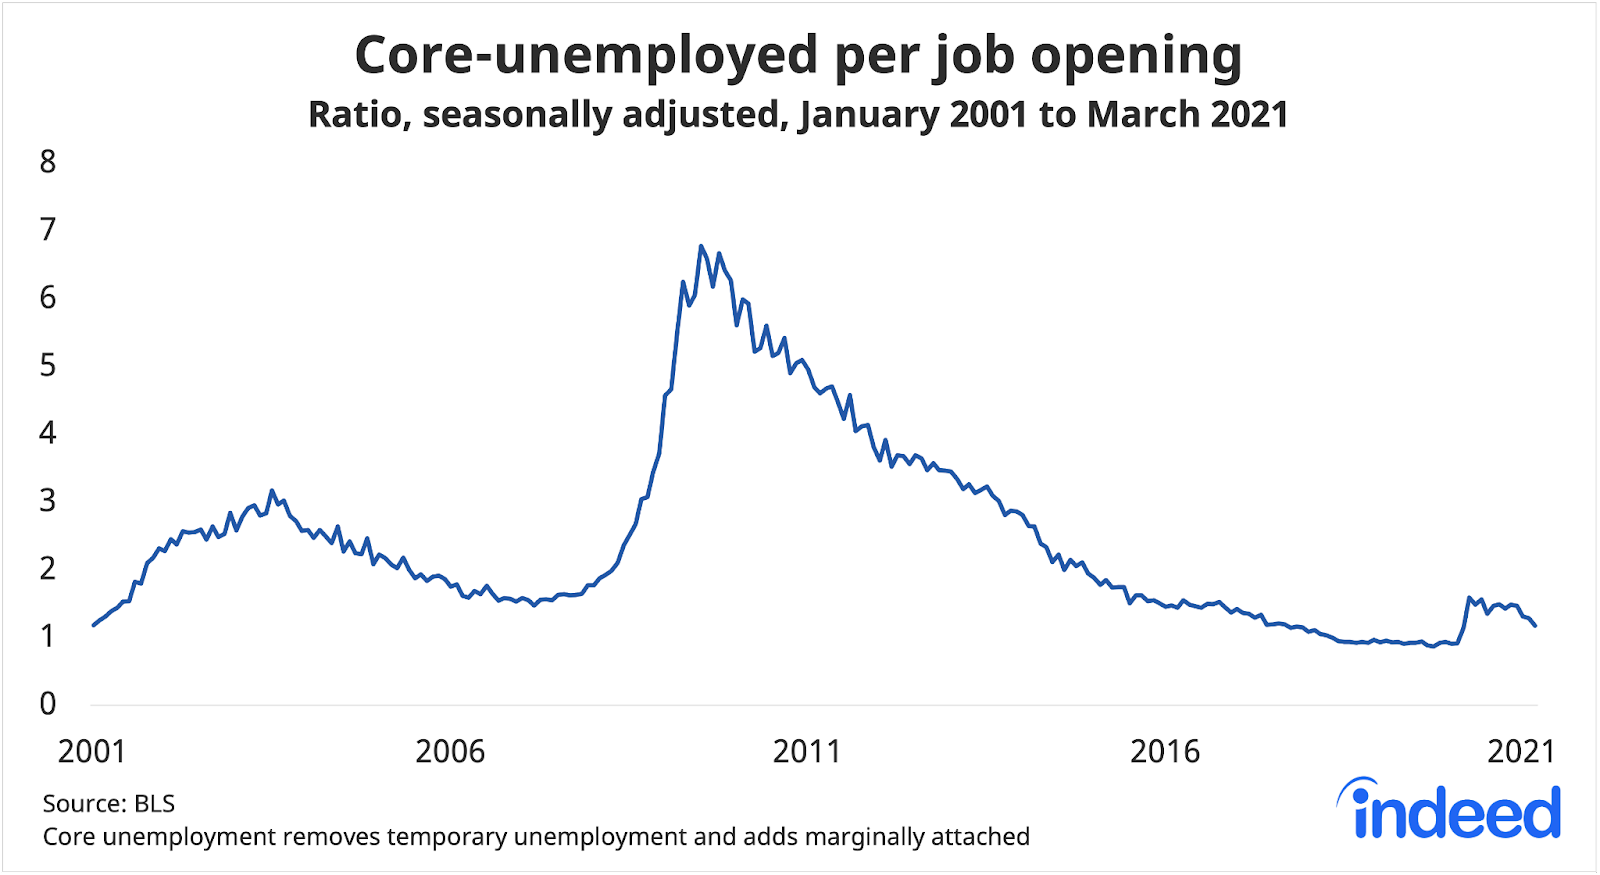 Line graph showing core unemployed per job opening